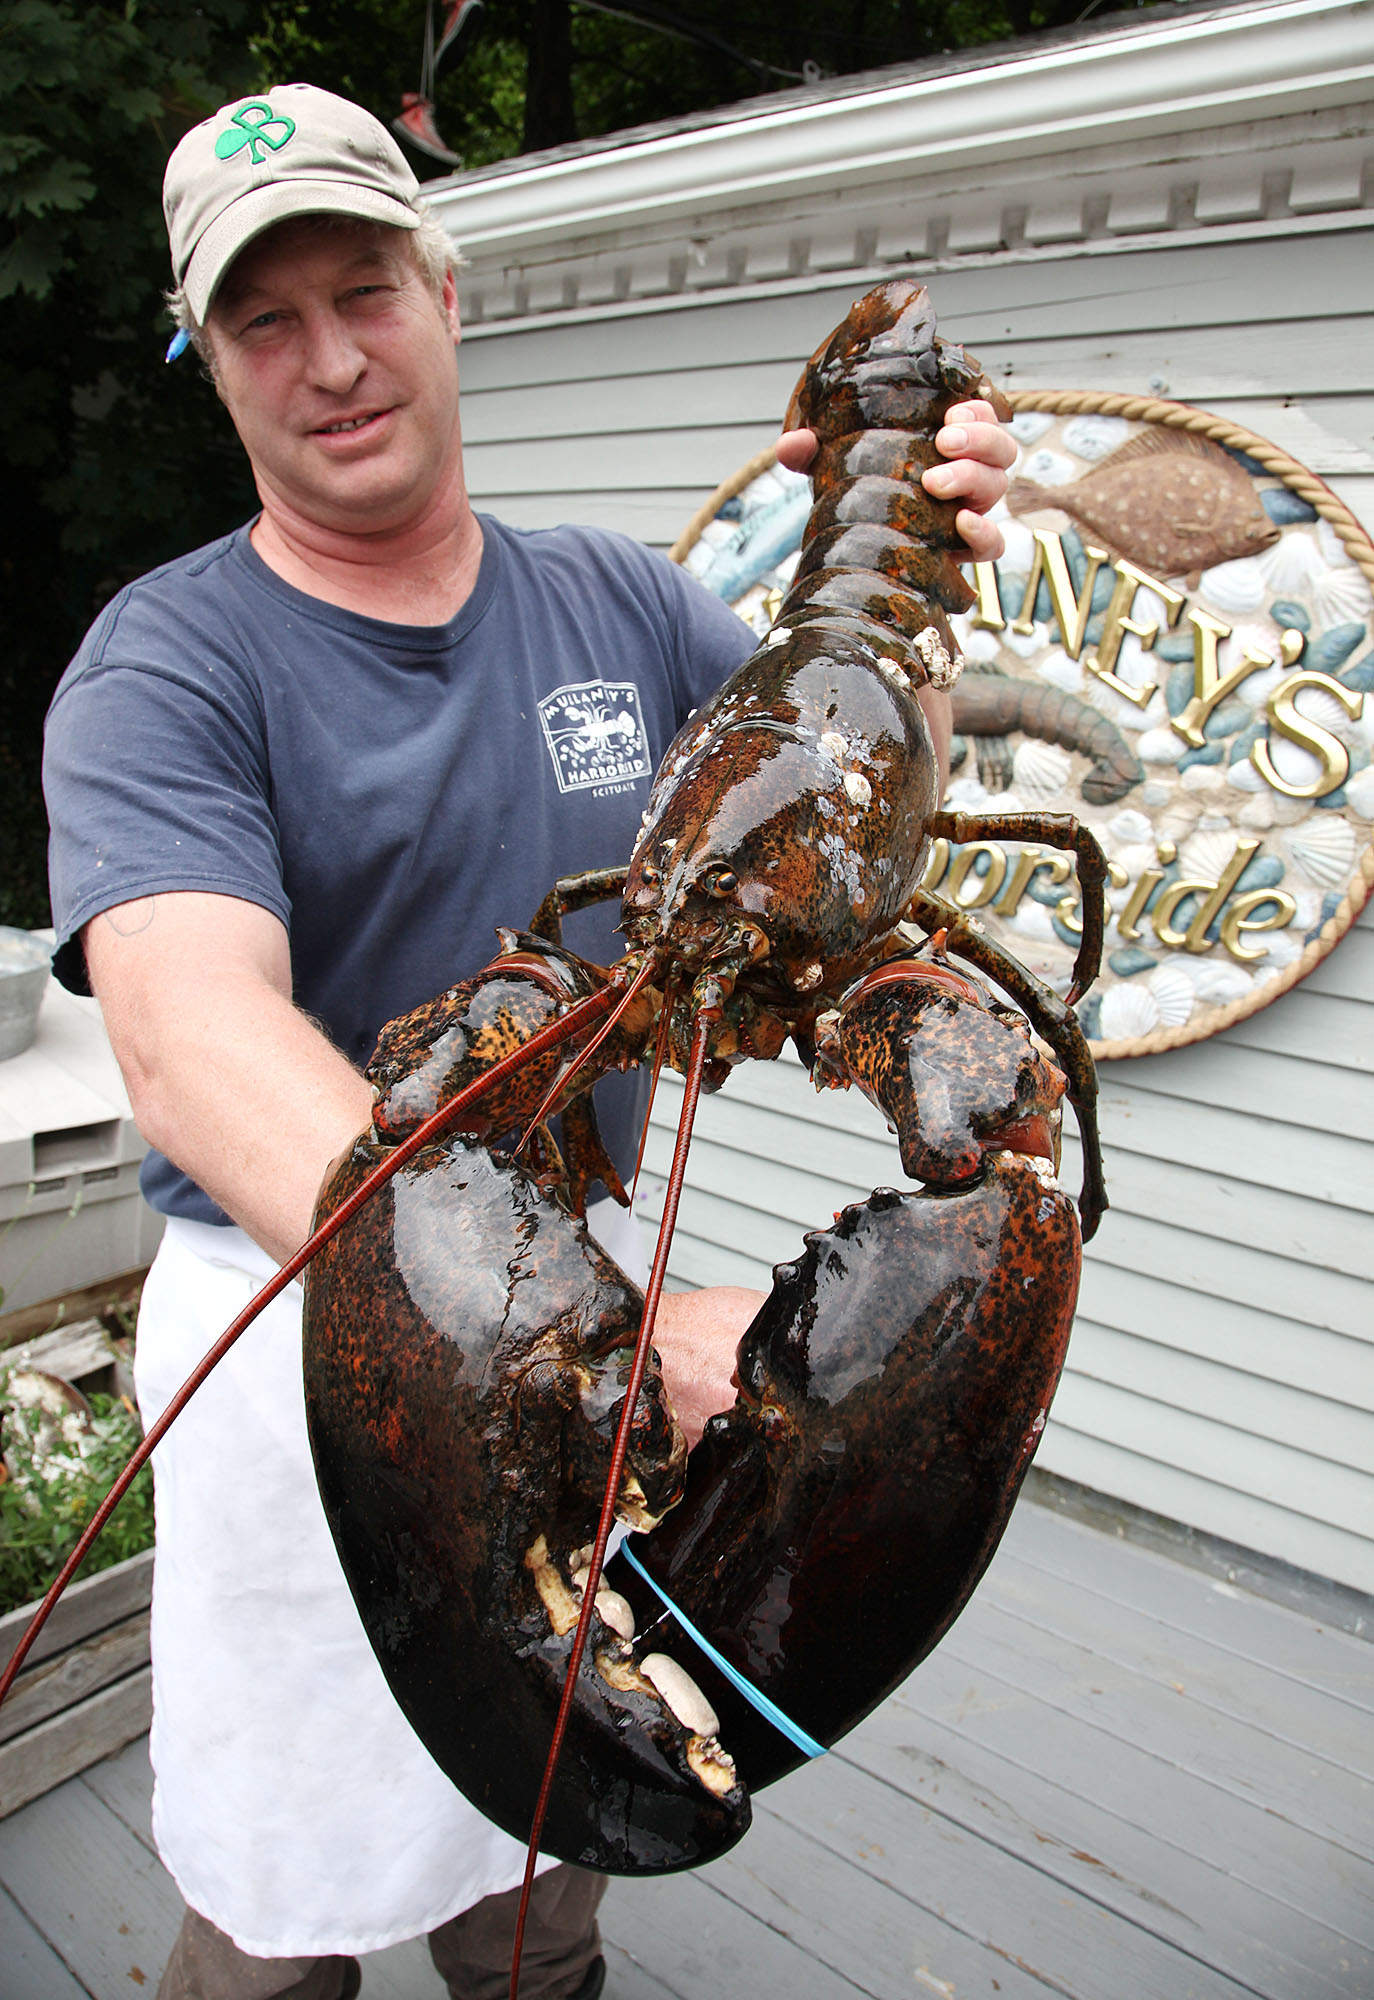 18 Pound Lobster Gets Reprieve Wtop